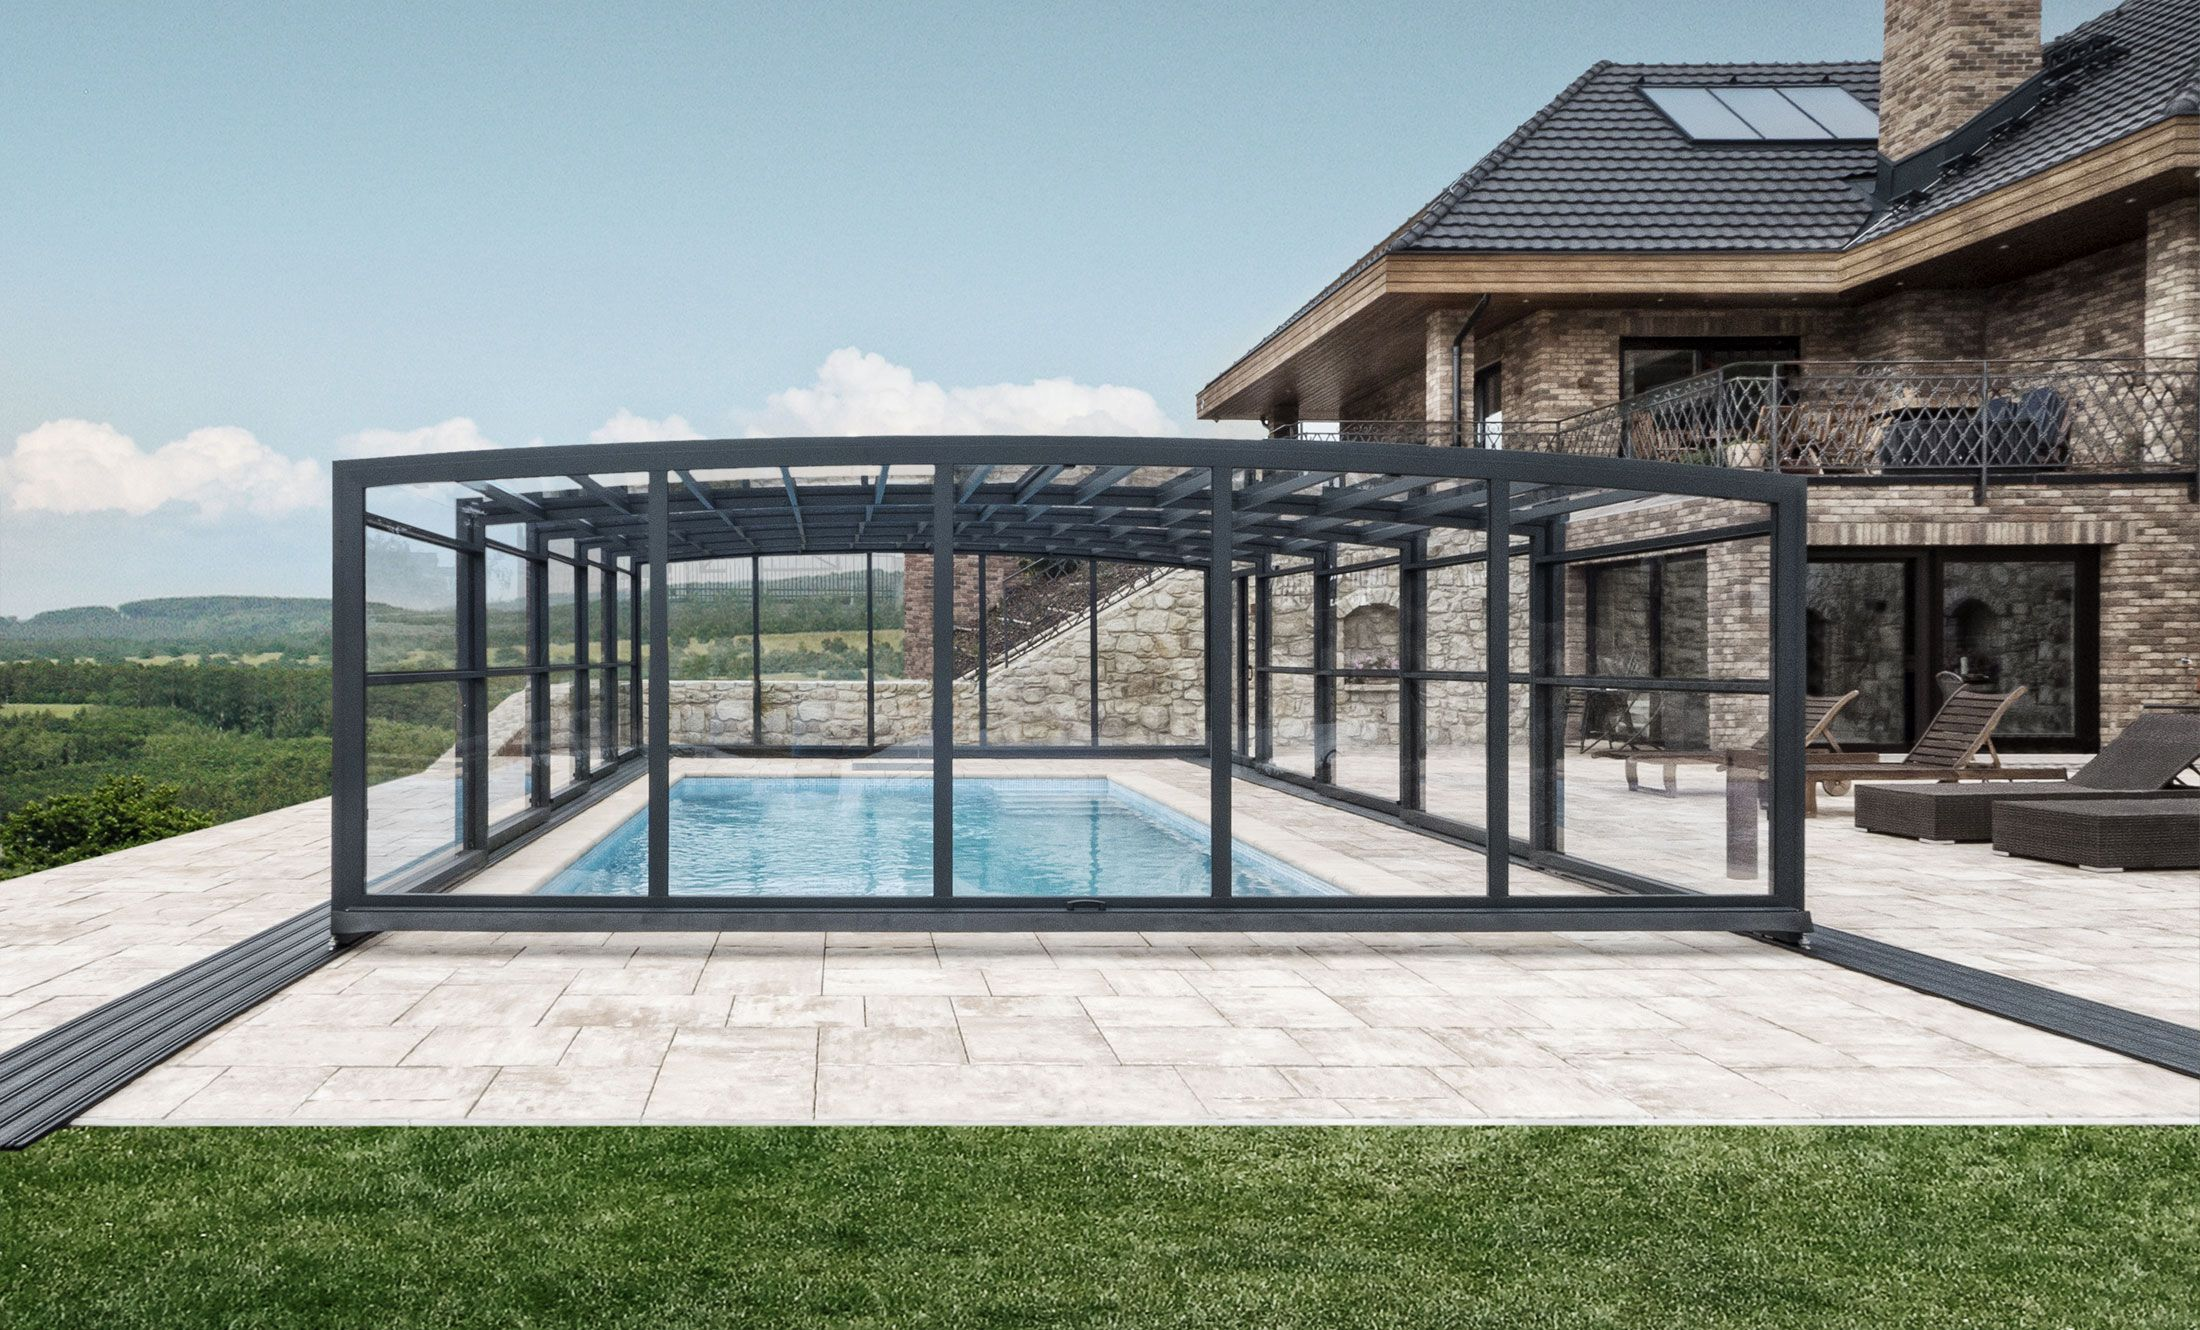 Pool Enclosure POPP PRESTIGE P3 robust solid construction though